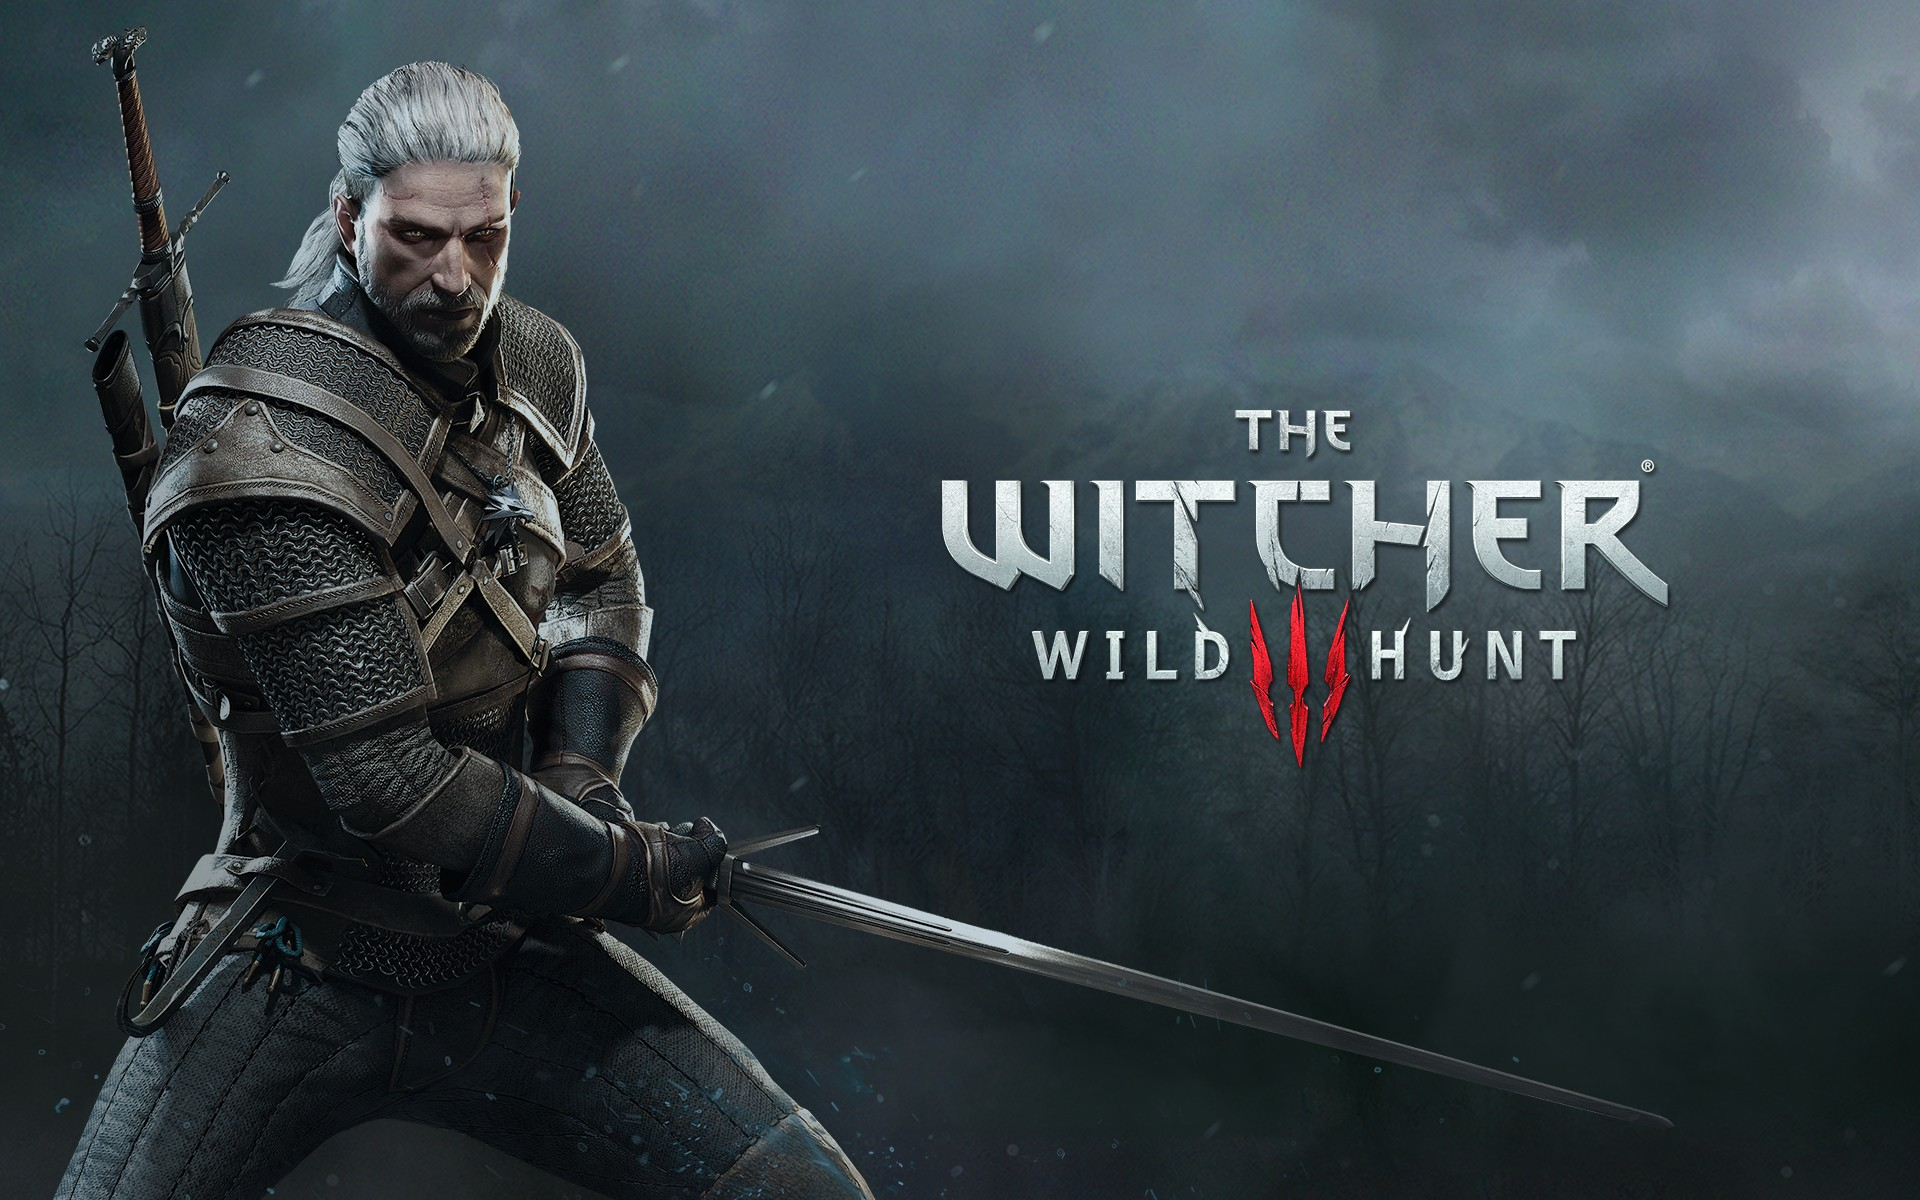 the witcher 3 wallpapers pictures images